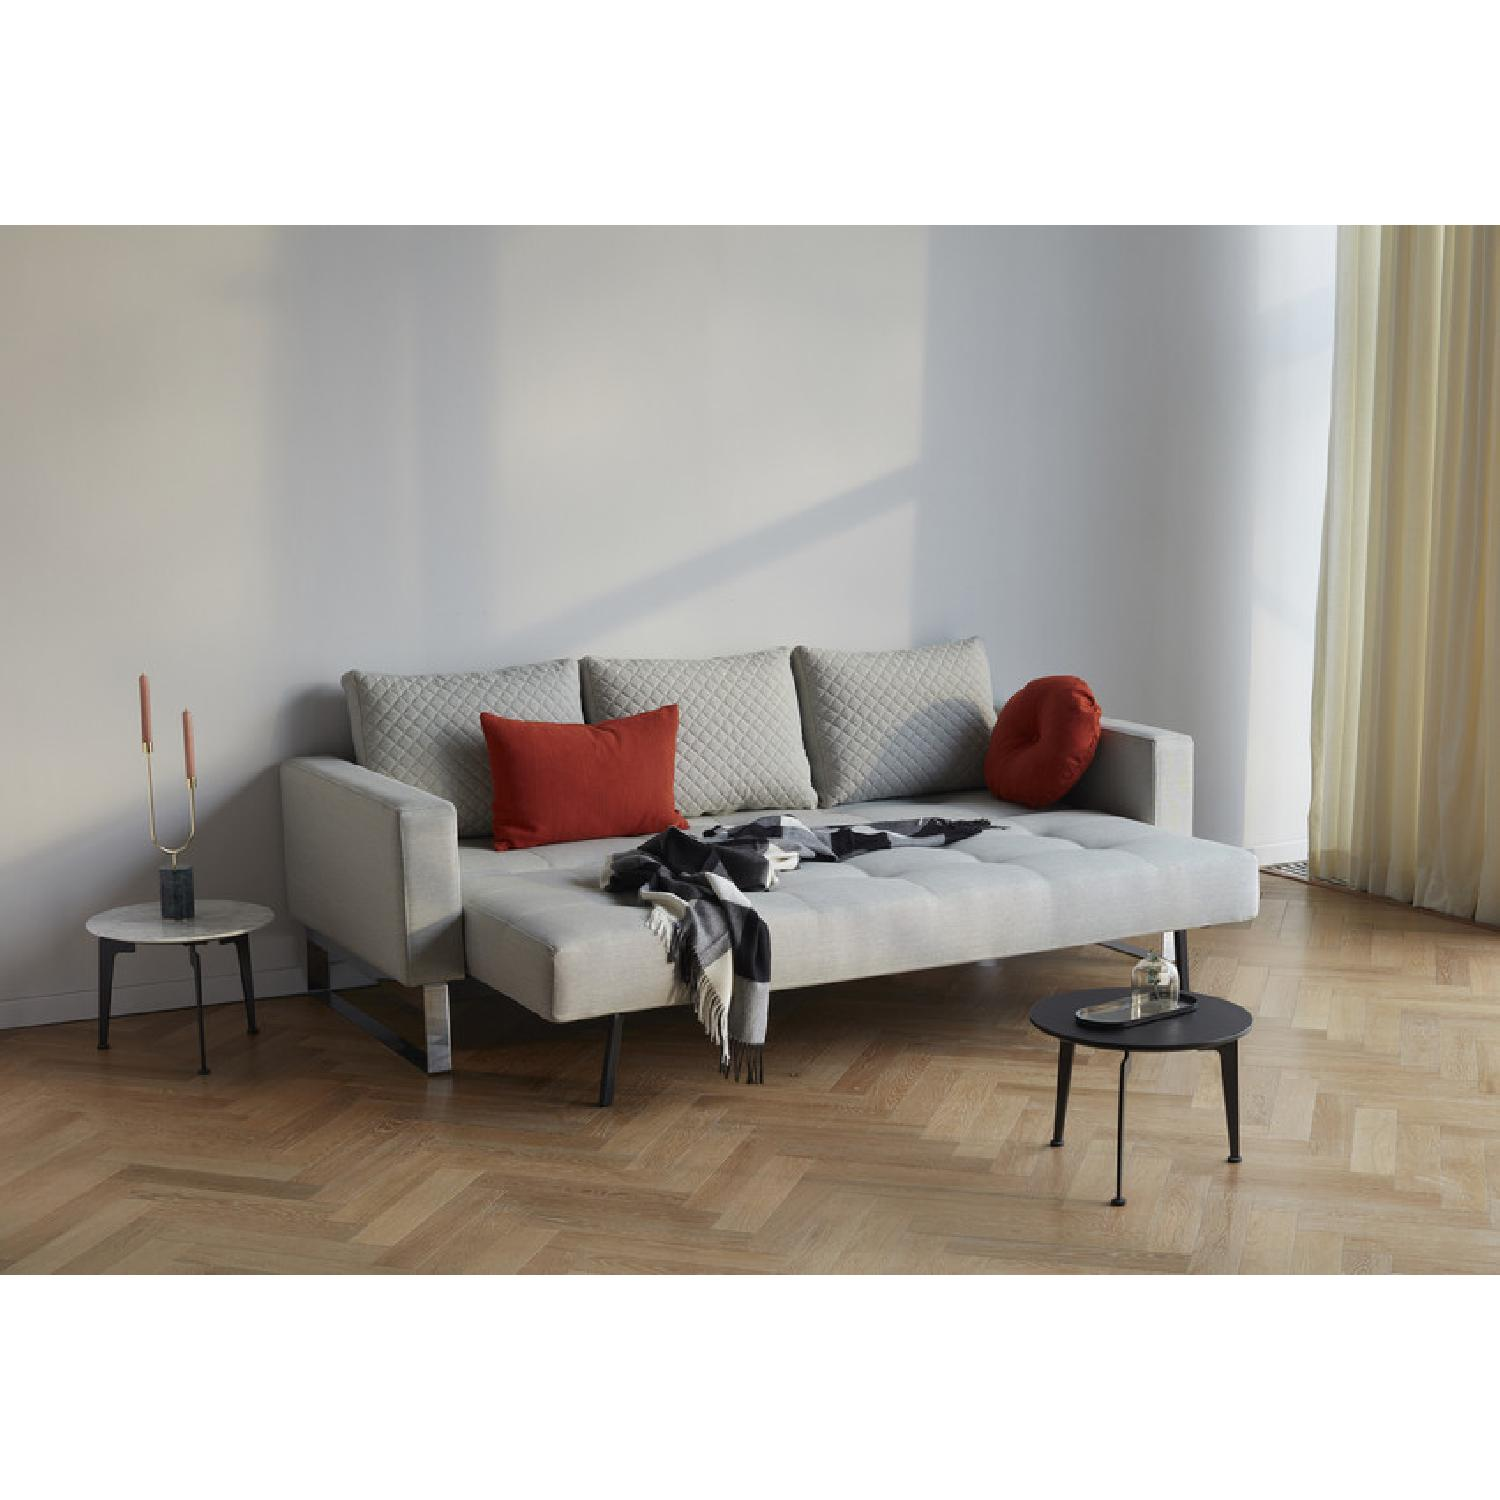 Innovation USA Cassius Quilt Deluxe Sleeper Sofa